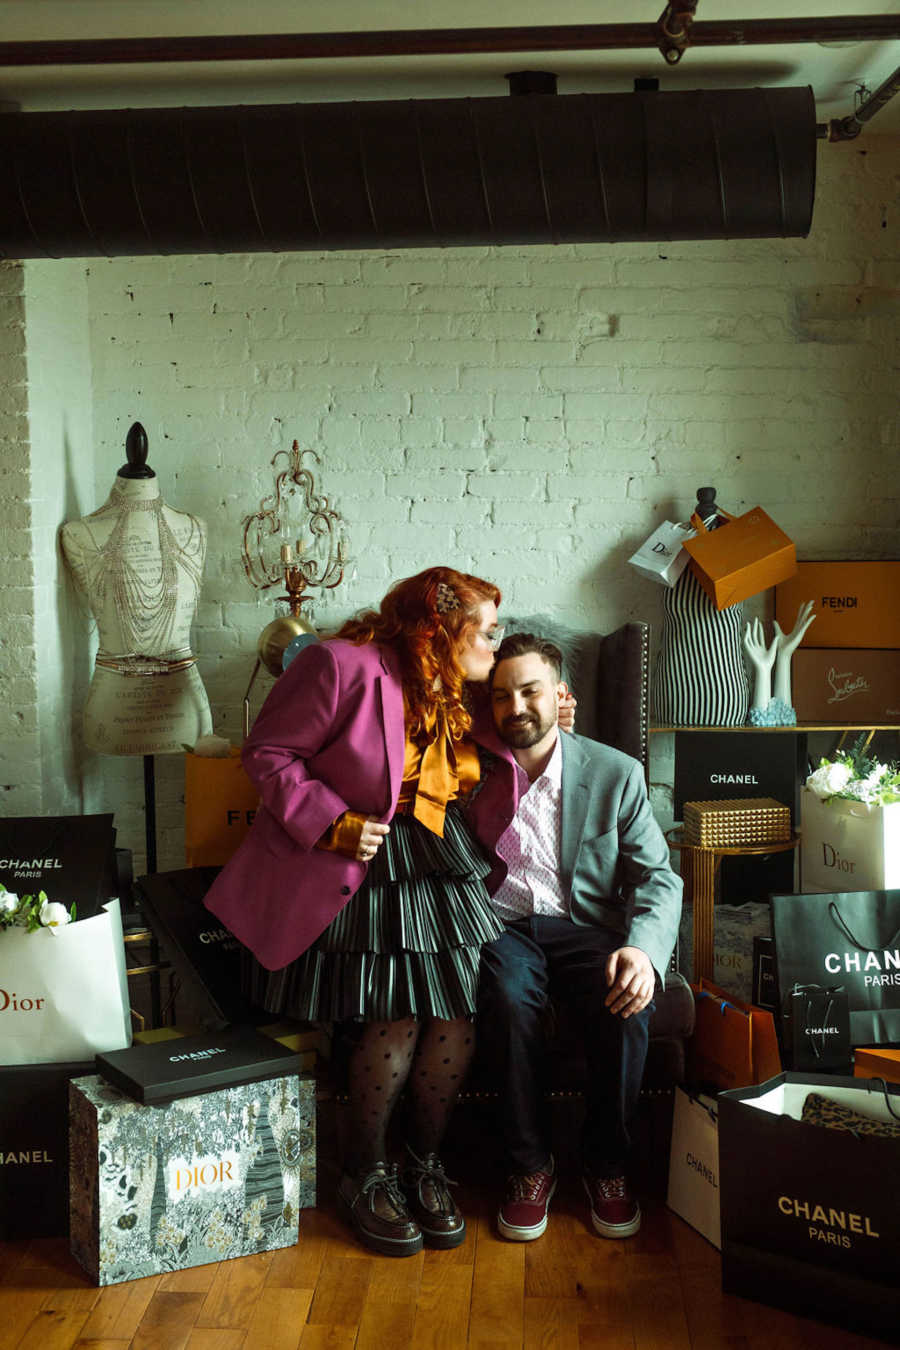 Woman and man sitting in chair surrounded by shopping bags with the woman kissing the man on the head